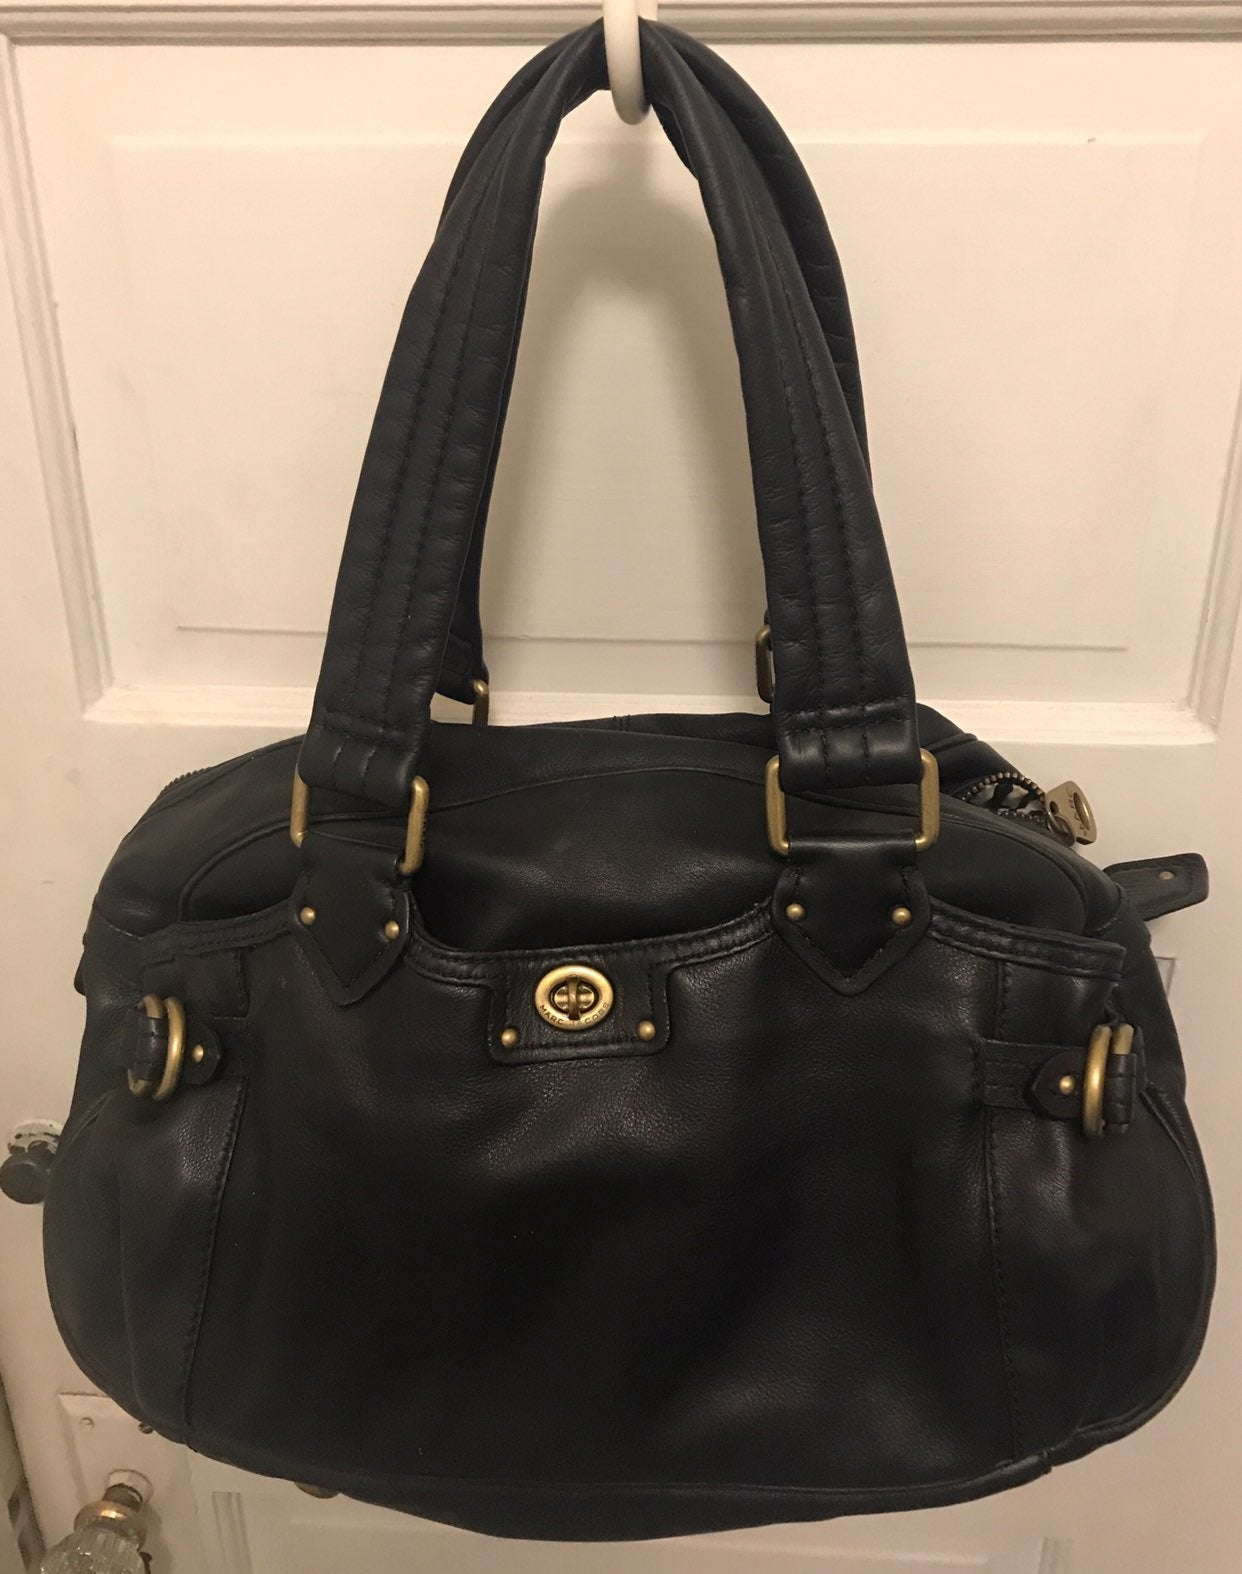 leater purse maco jaccoas excellent cond